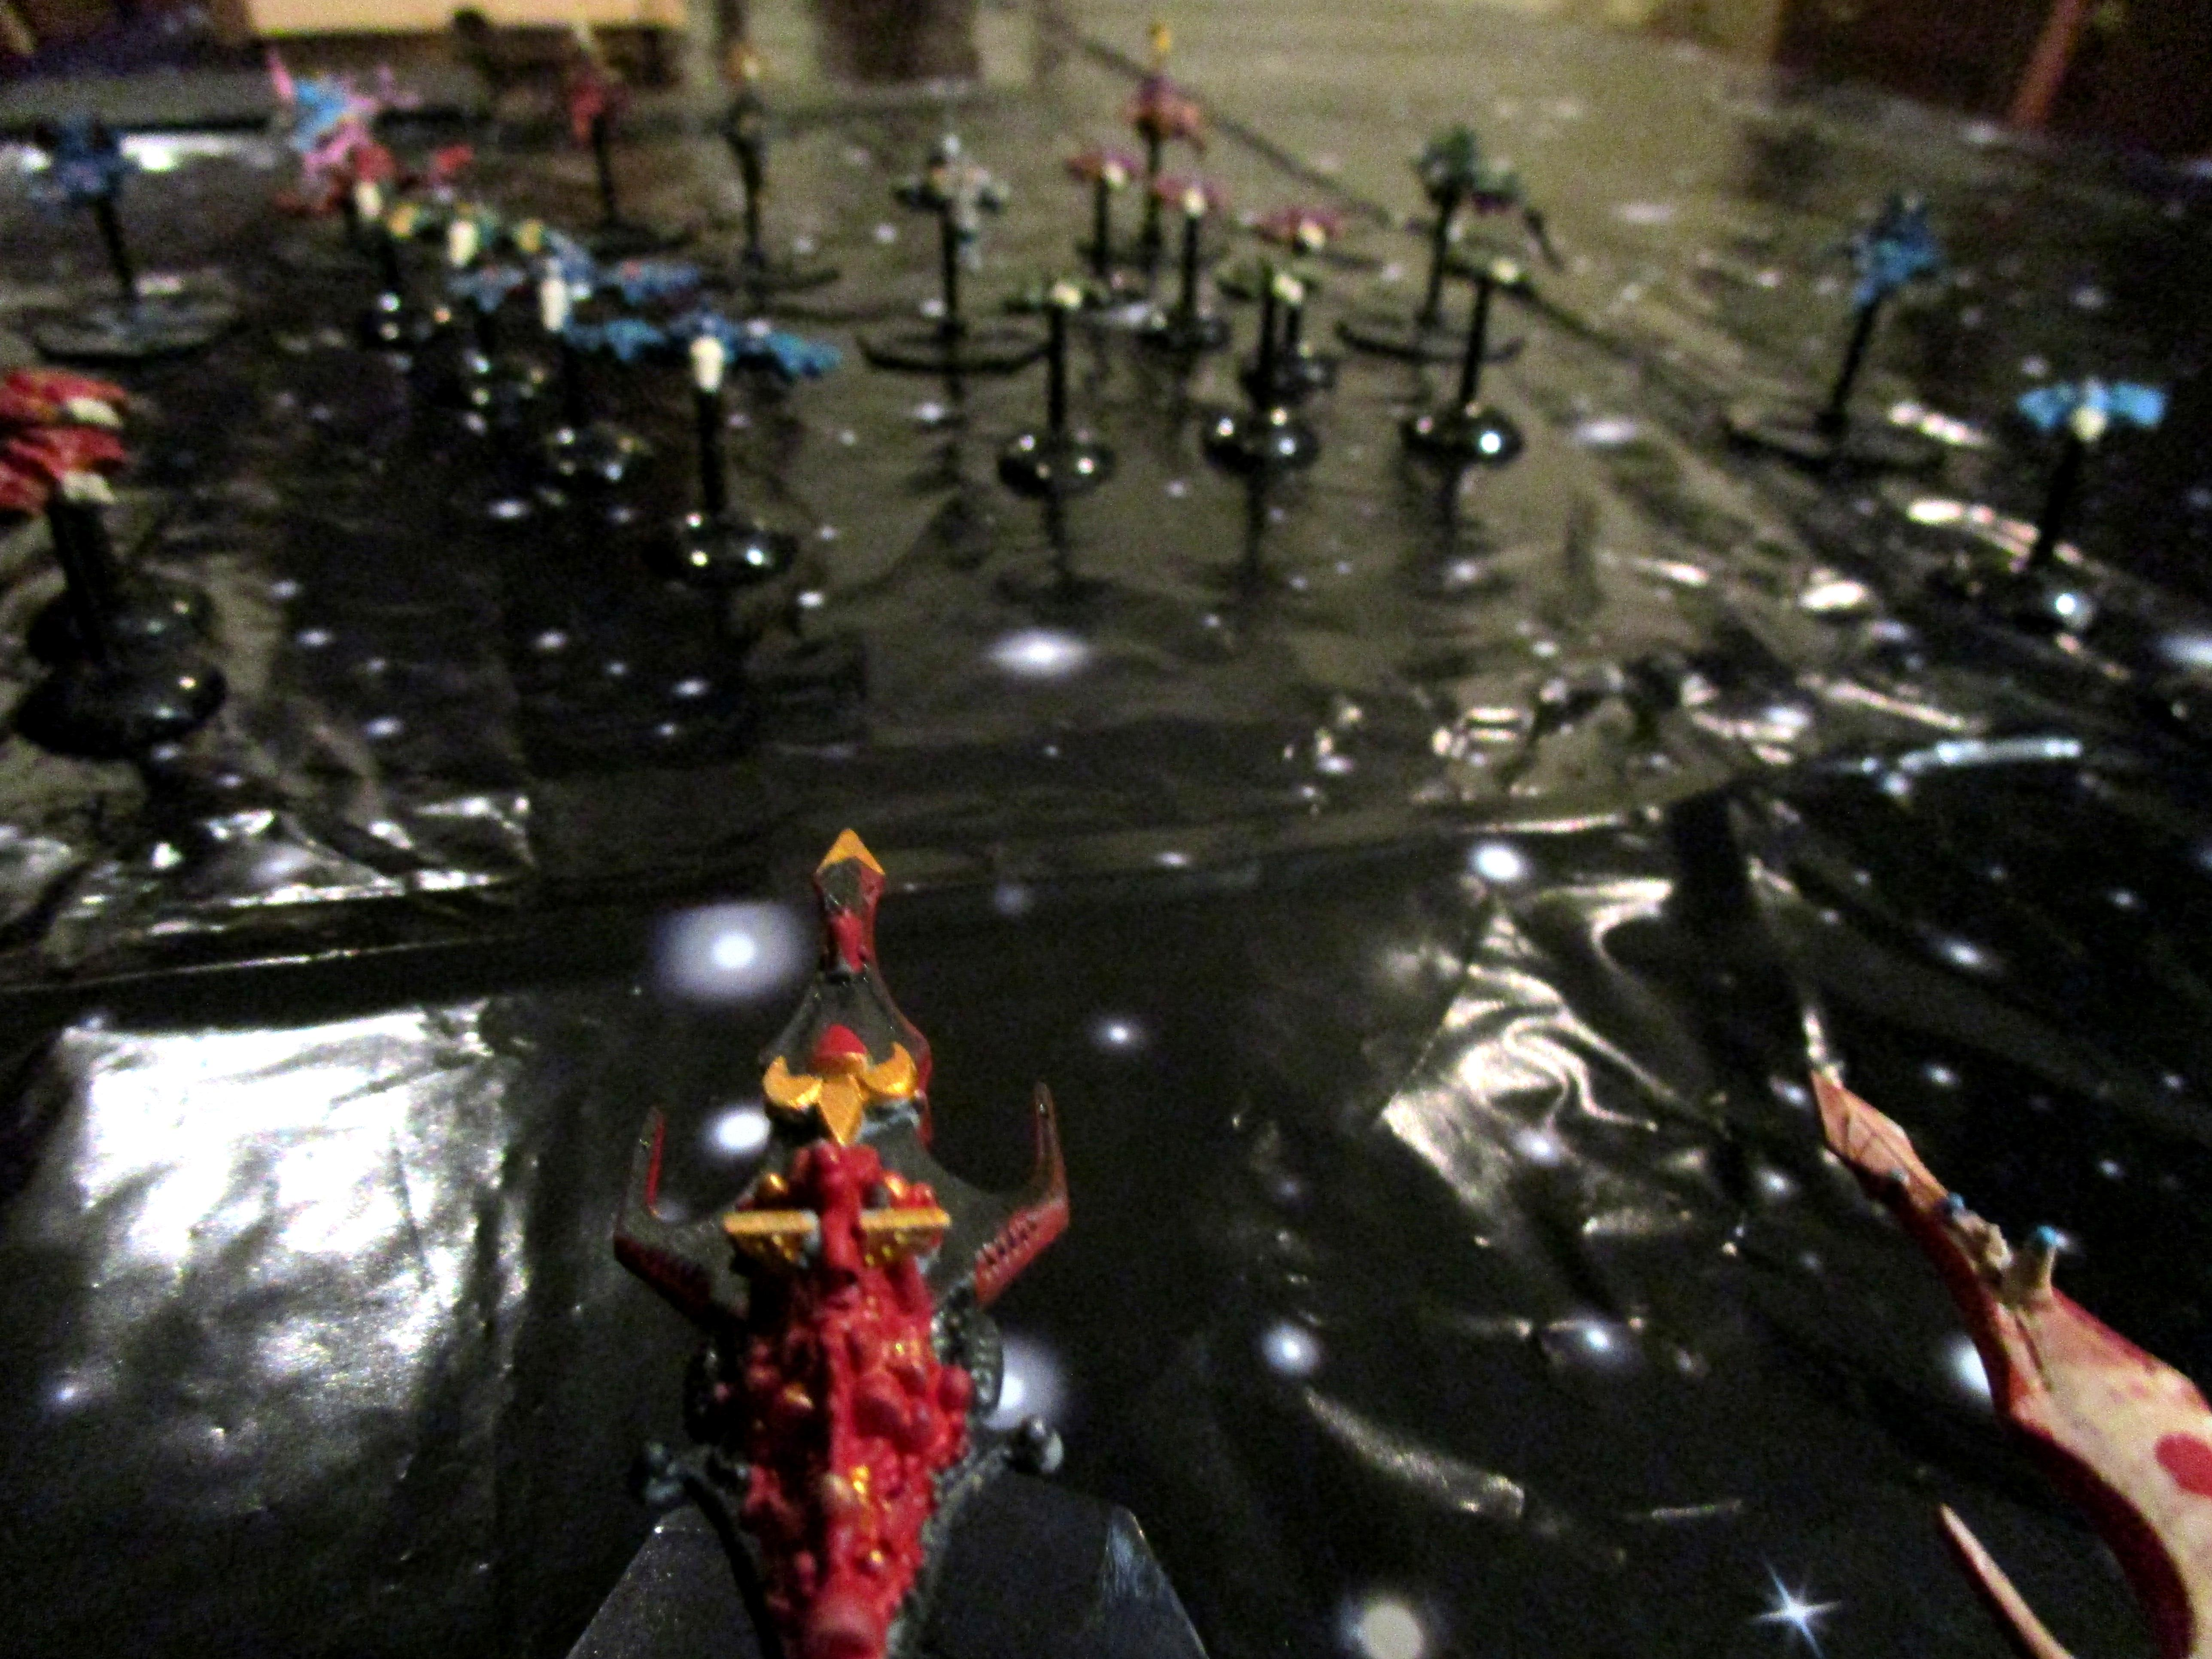 Battlefleet Gothic, Chaos, Chaos Space Marines, Conversion, Oldhammer, Space Fleet